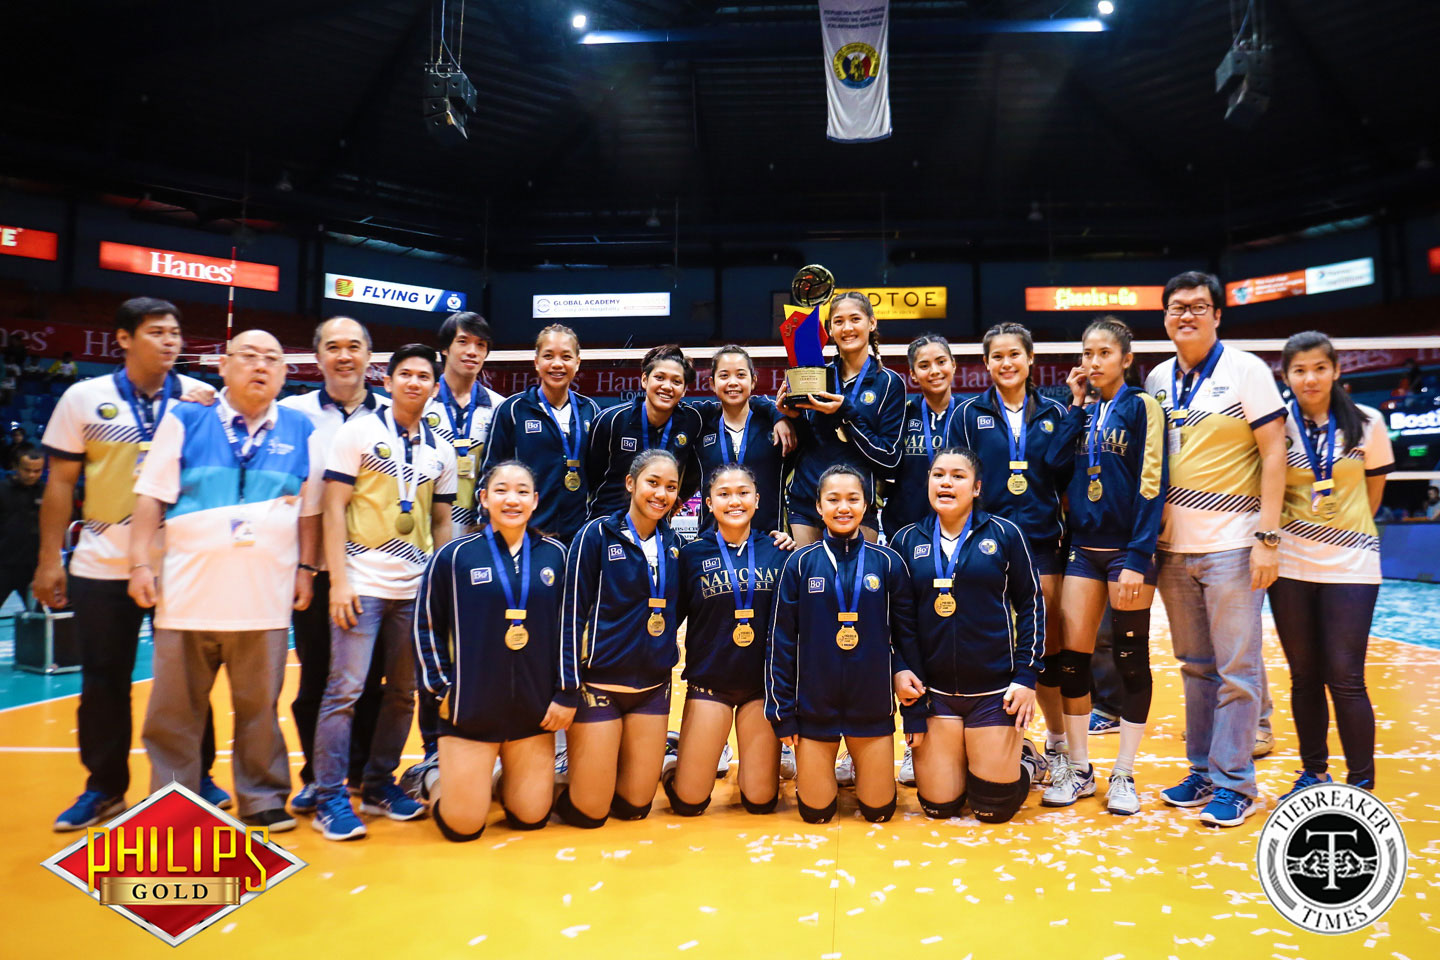 Philippine Sports News - Tiebreaker Times Lady Bulldogs sweep conference to secure third straight crown FEU News NU PVL Volleyball  NU Women's Volleyball Jorelle Singh Jasmin Nabor Jaja Santiago George Pascua Gayle Valdez FEU Women's Volleyball Babes Castillo Aiko Urdas 2017 PVL Women's Collegiate Conference 2017 PVL Season